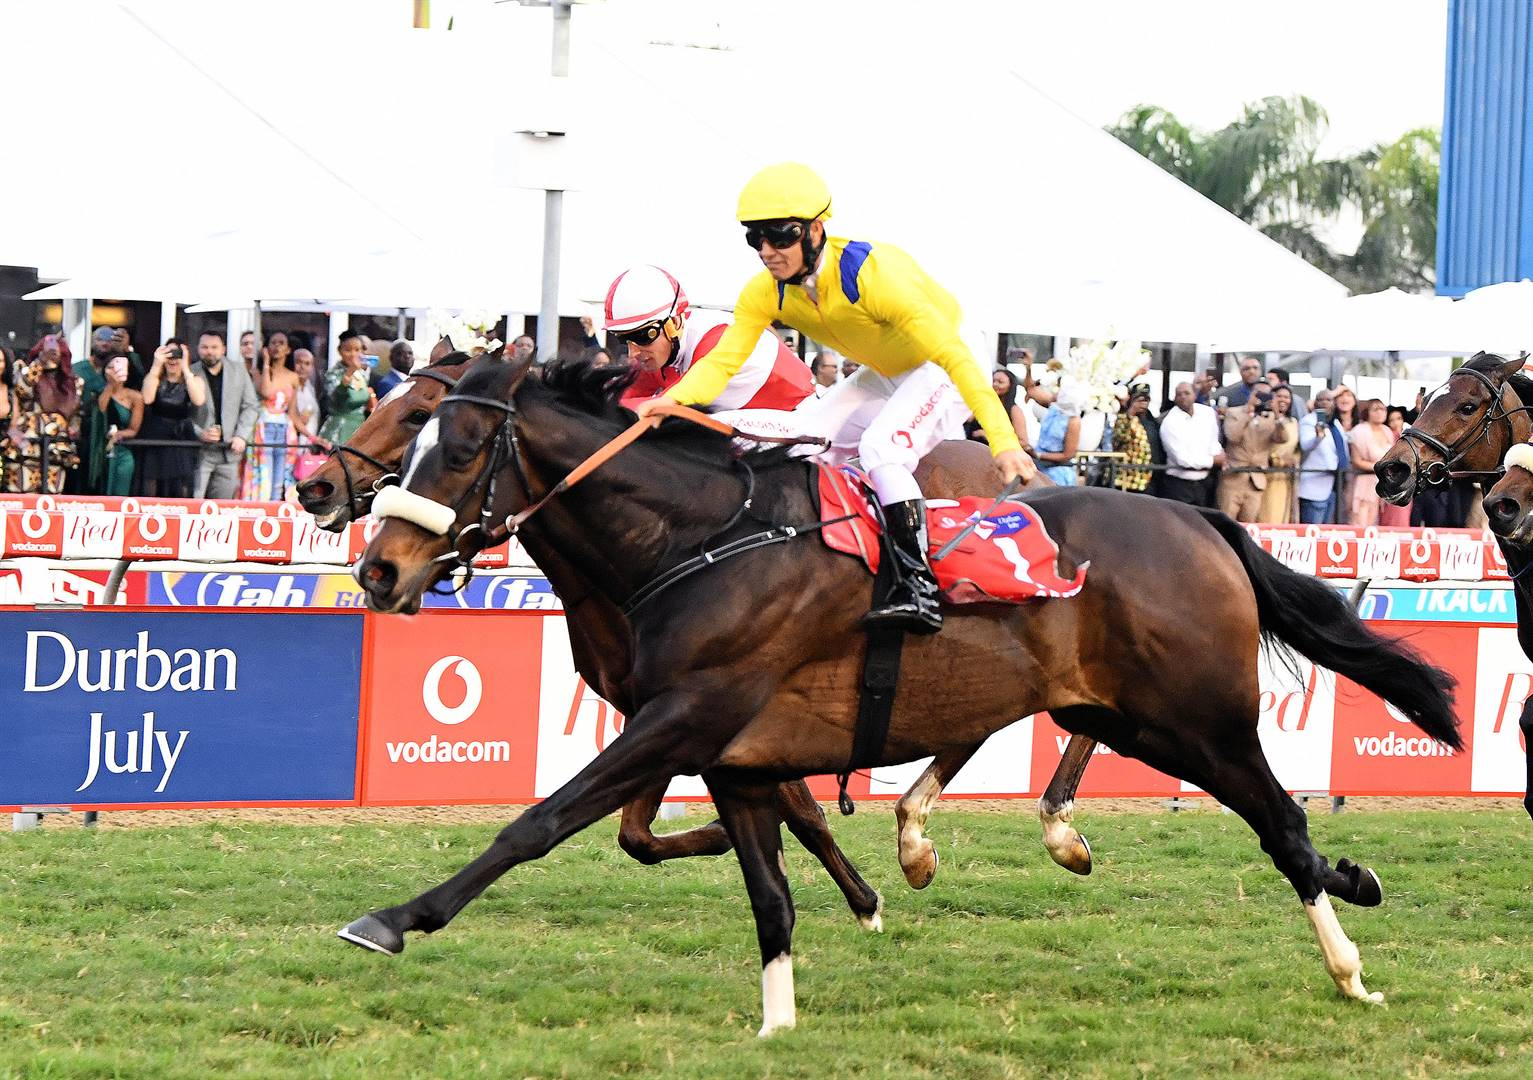 News24.com | Hold your horses! Council officials probed for using development funds for R170k Durban July joyride